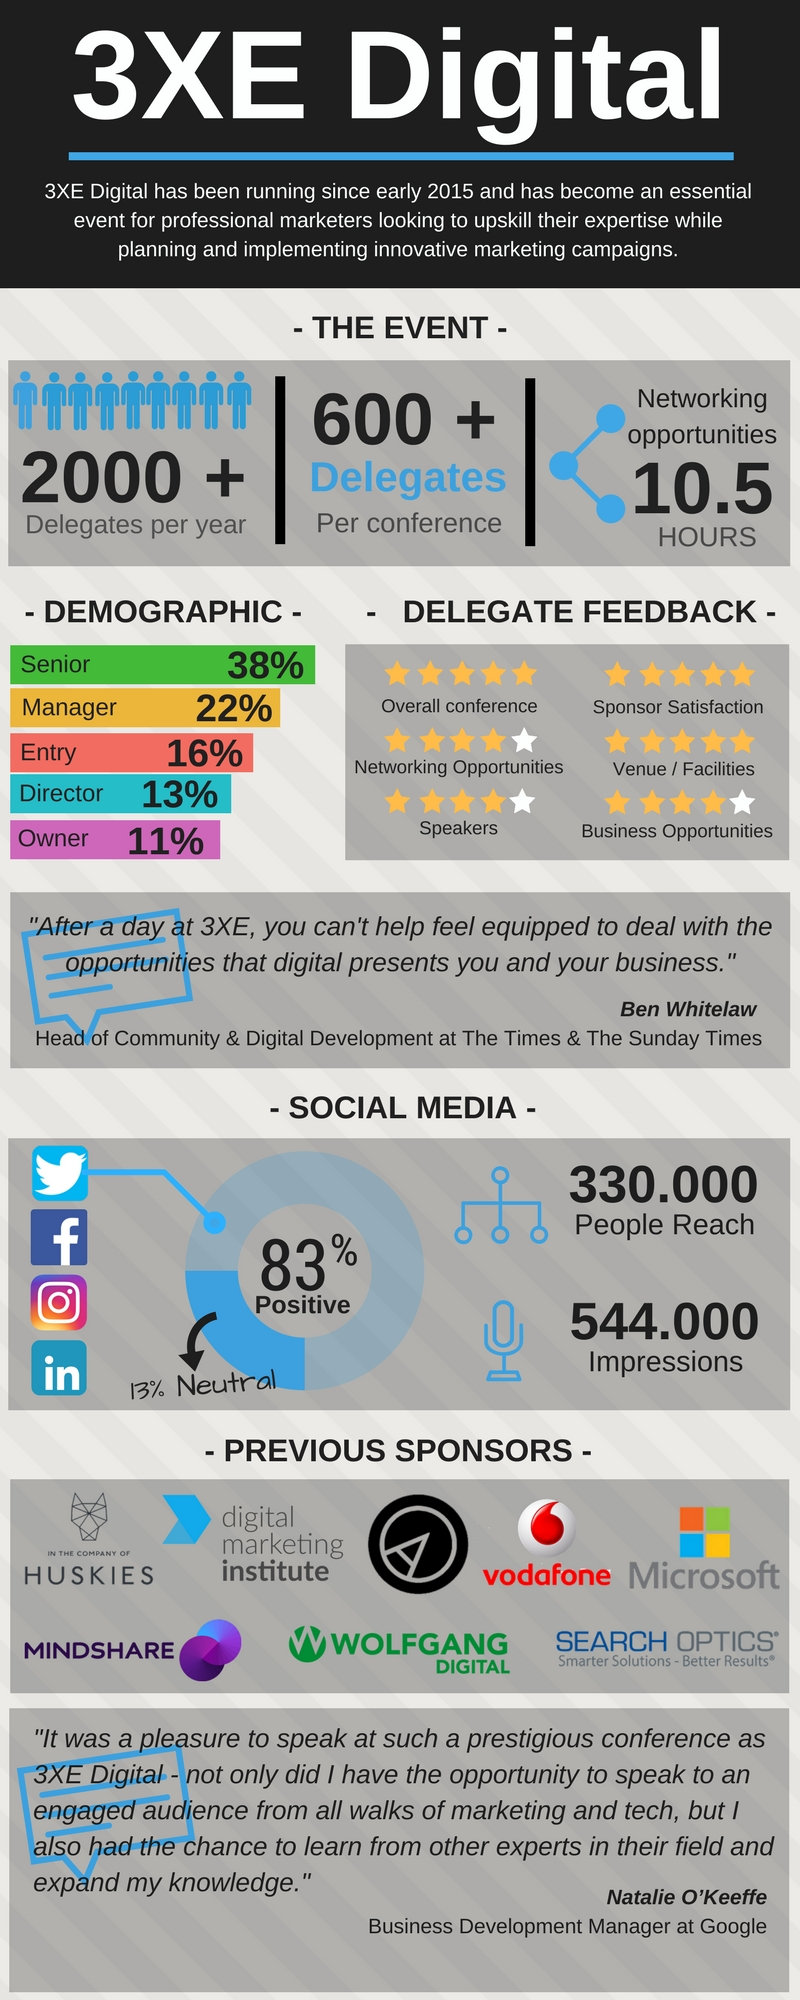 3XE Digital Infographic and latest delegate, sponsor feedback